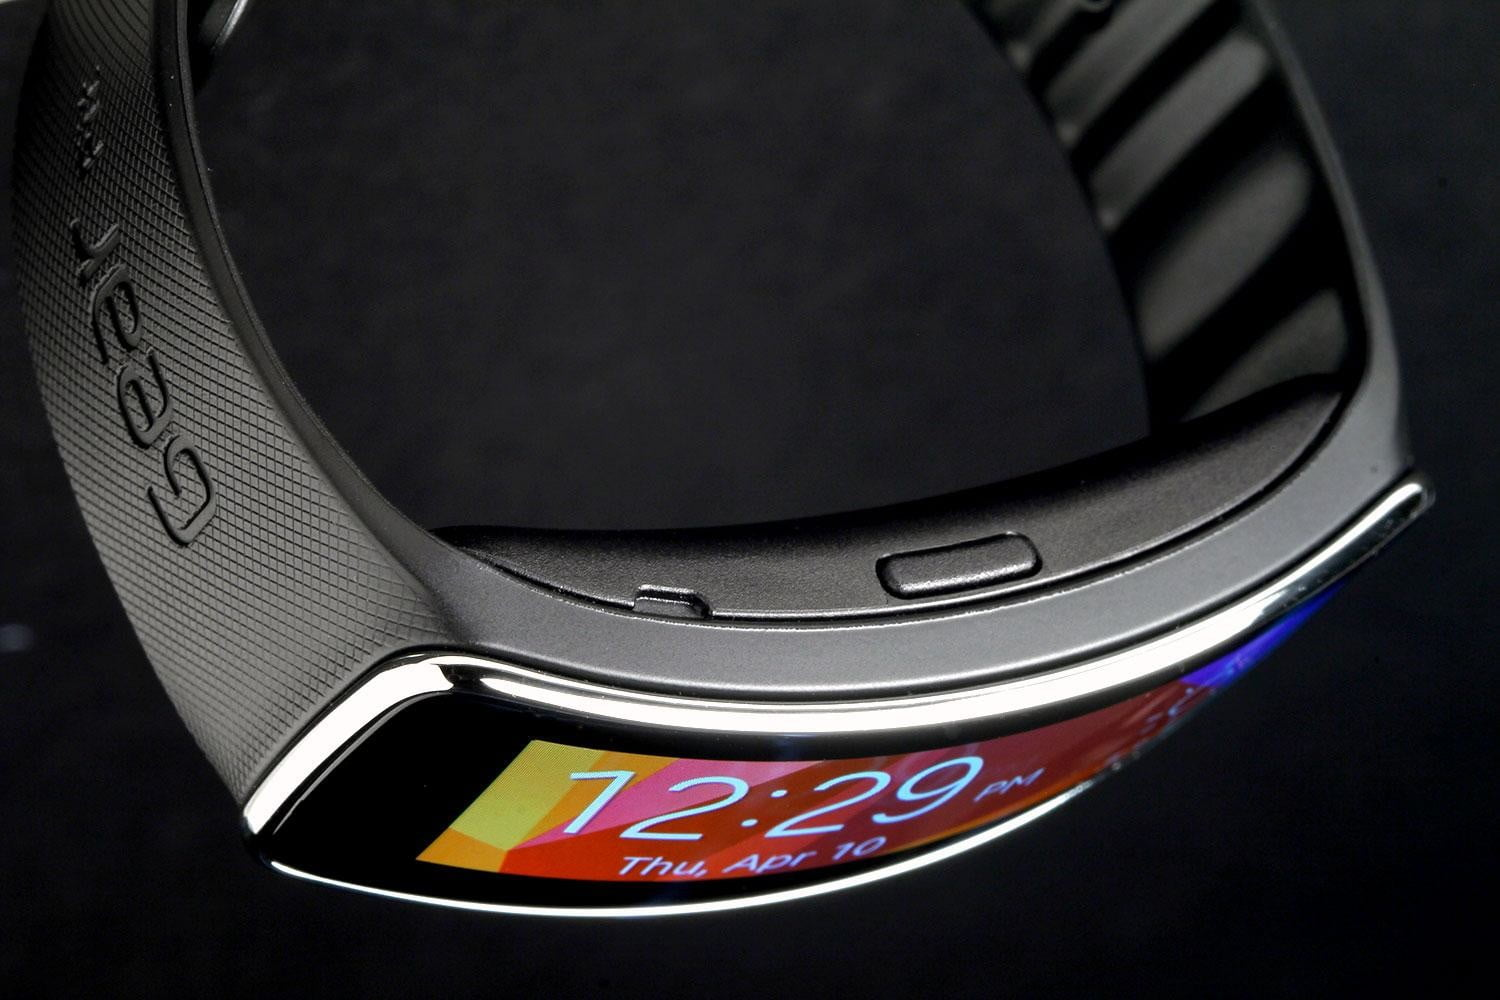 Samsung Gear Fit: 7 Problems Users Have, How to Fix Them